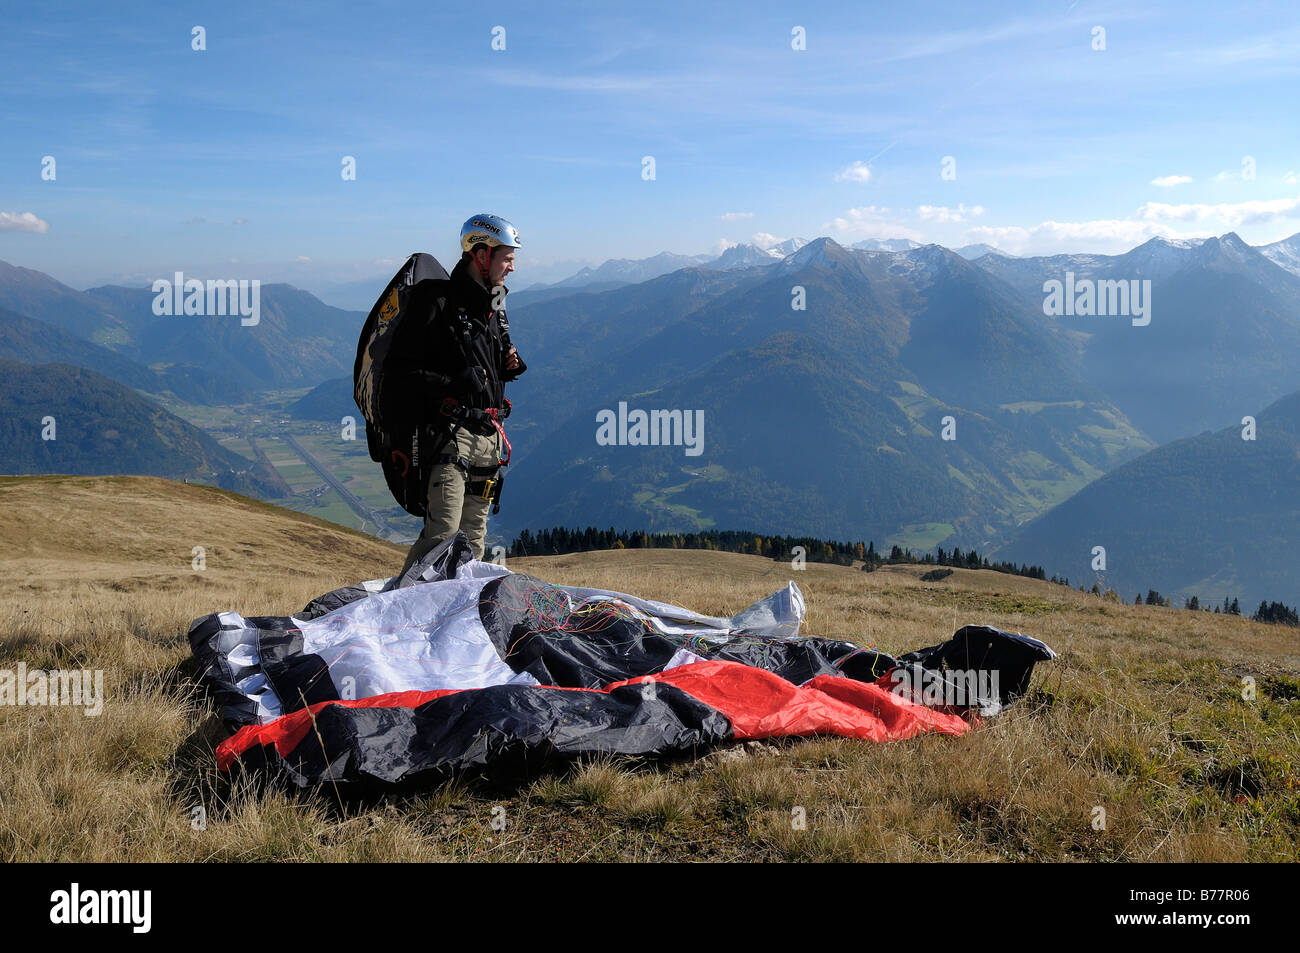 Paraglider preparing for takeoff, Monte Cavallo, Sterzing, Province of Bolzano-Bozen, Italy, Europe - Stock Image